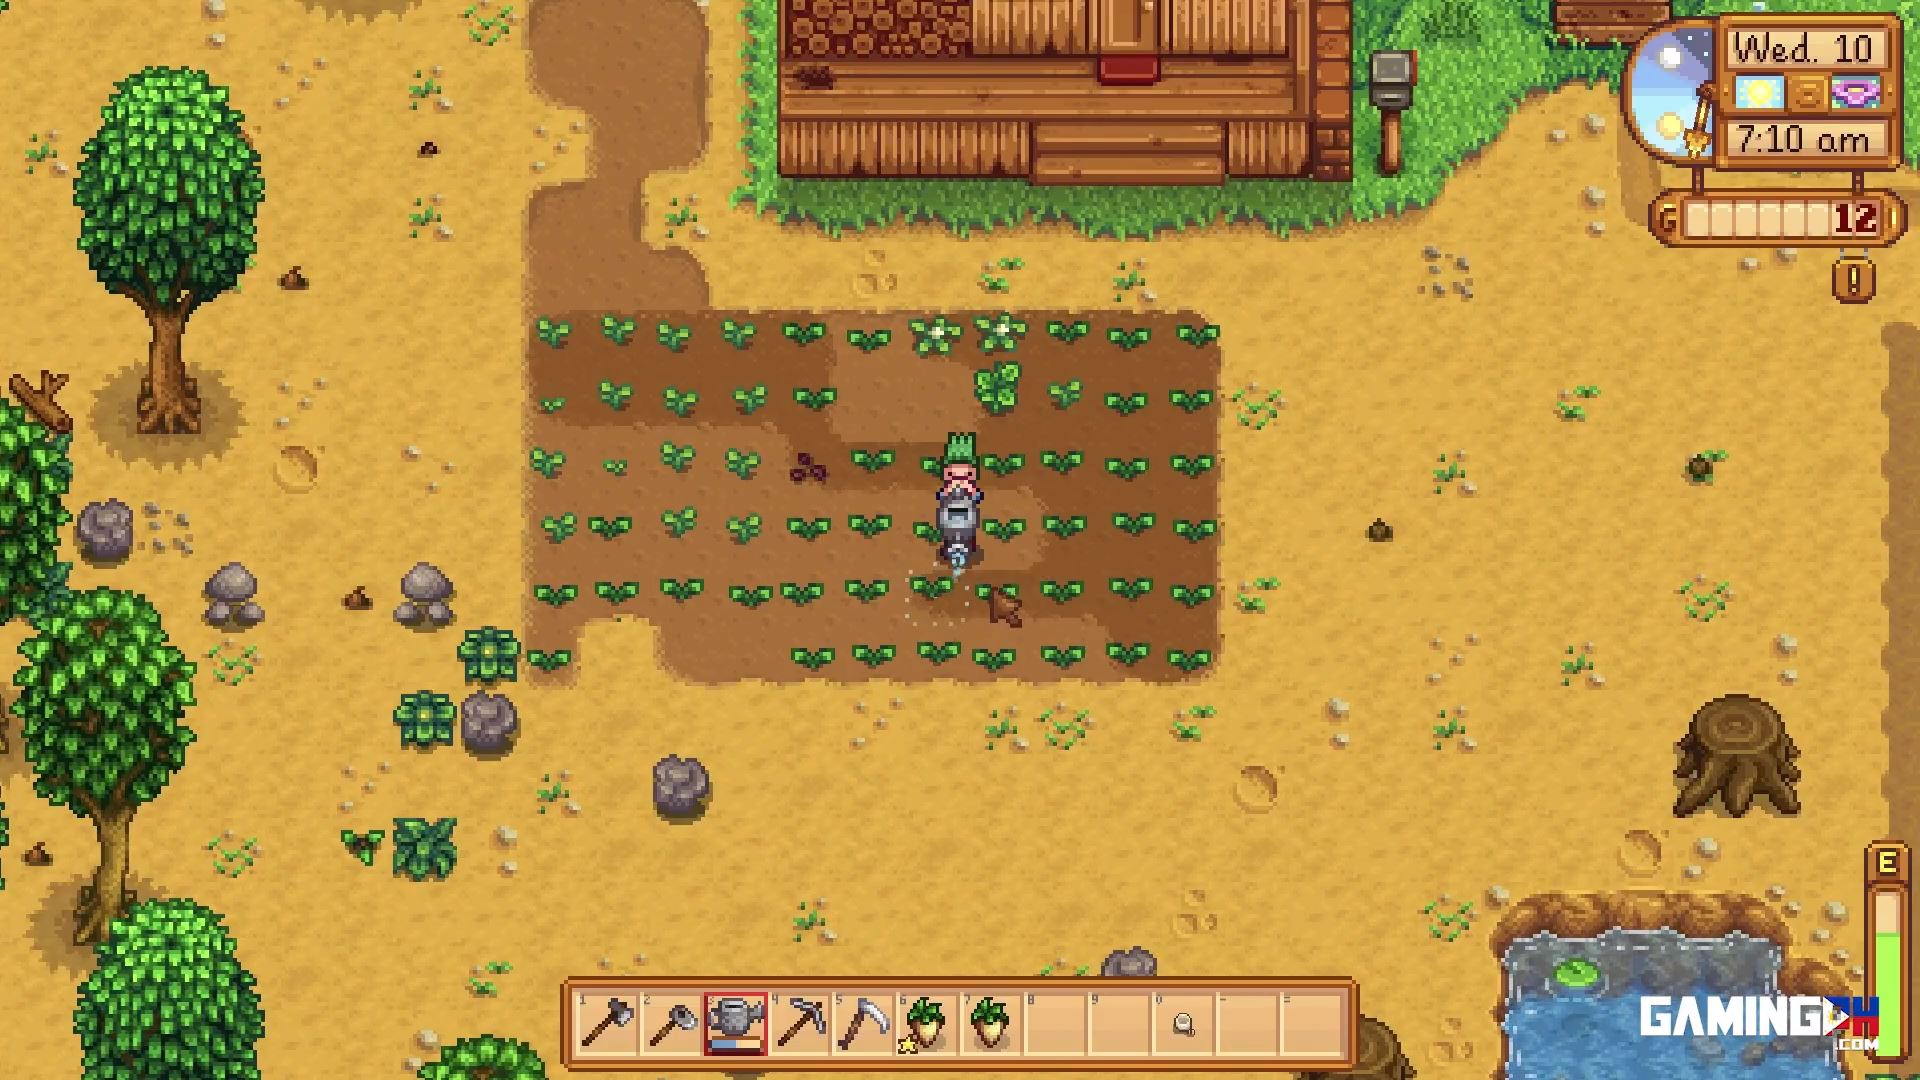 How to Refill Watering Can in Stardew Valley (Switch, Steam, GOG